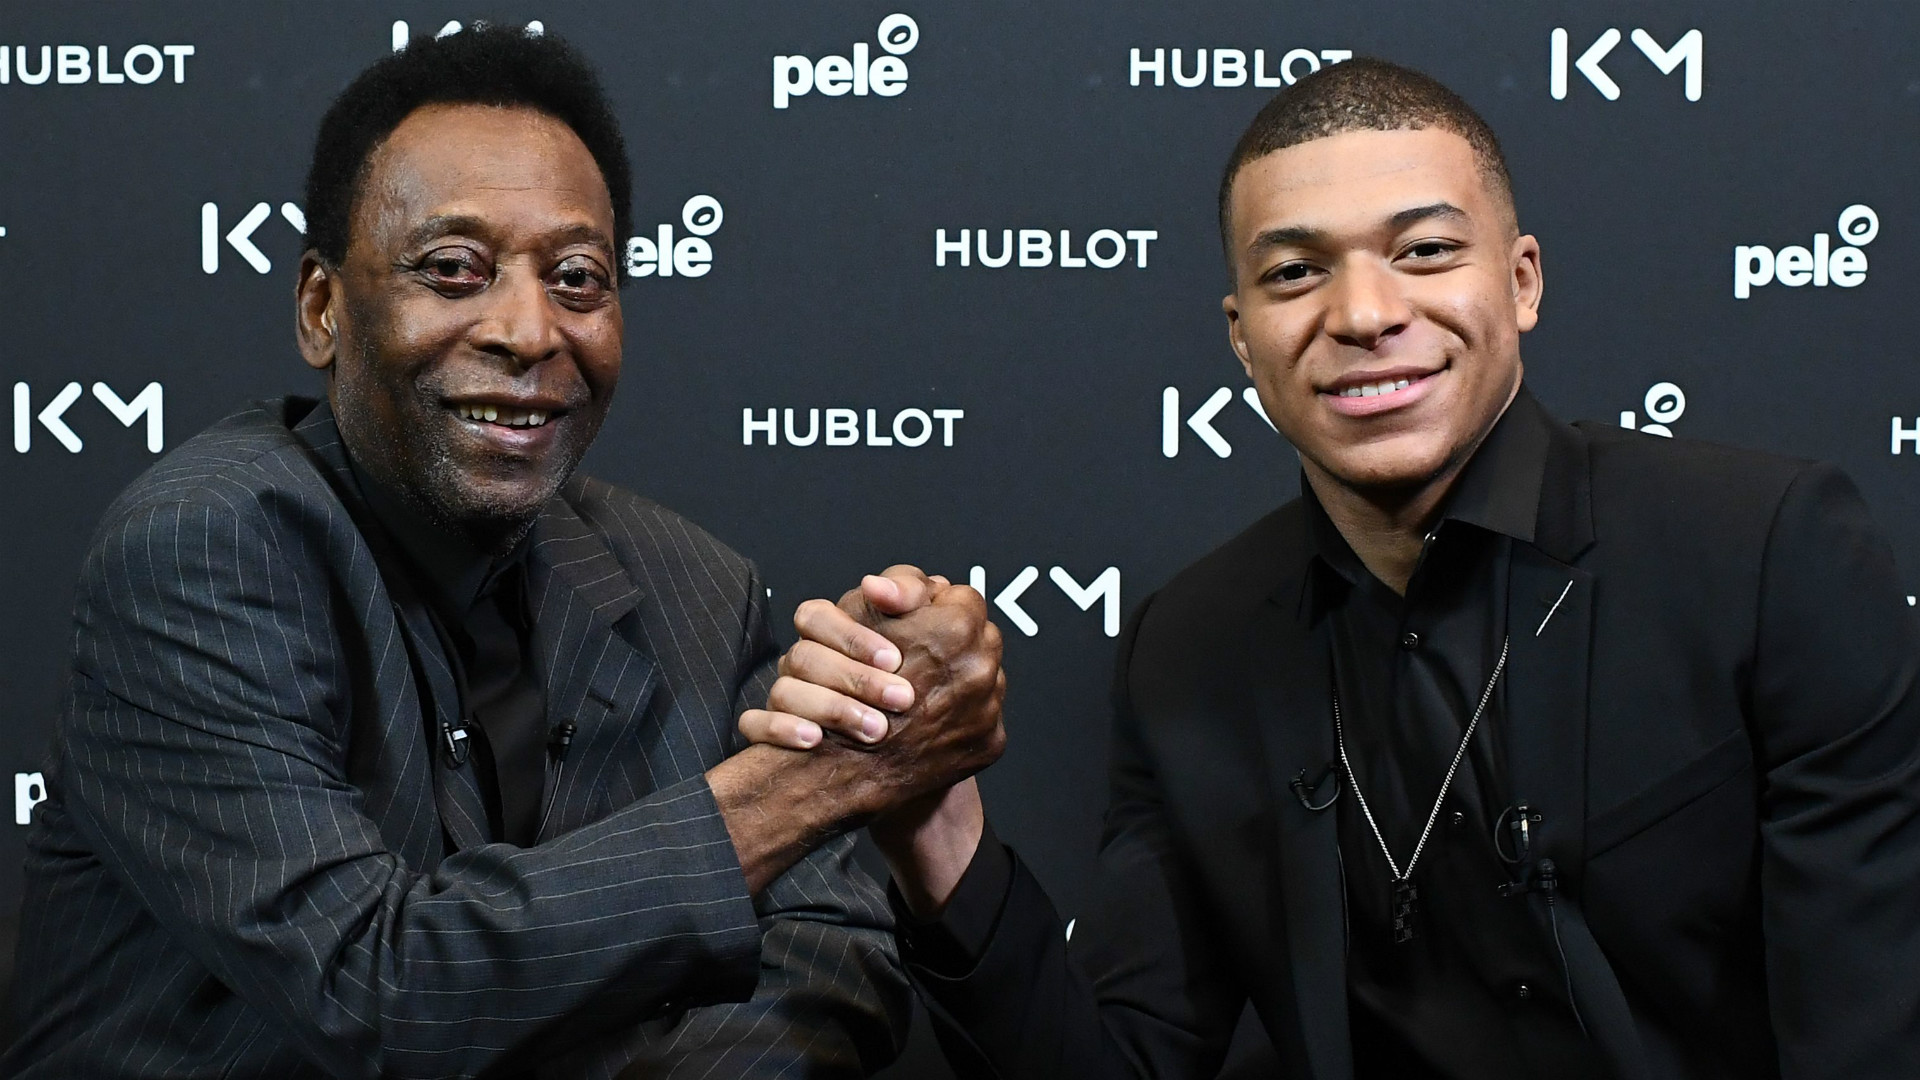 Pele treated in Paris hospital